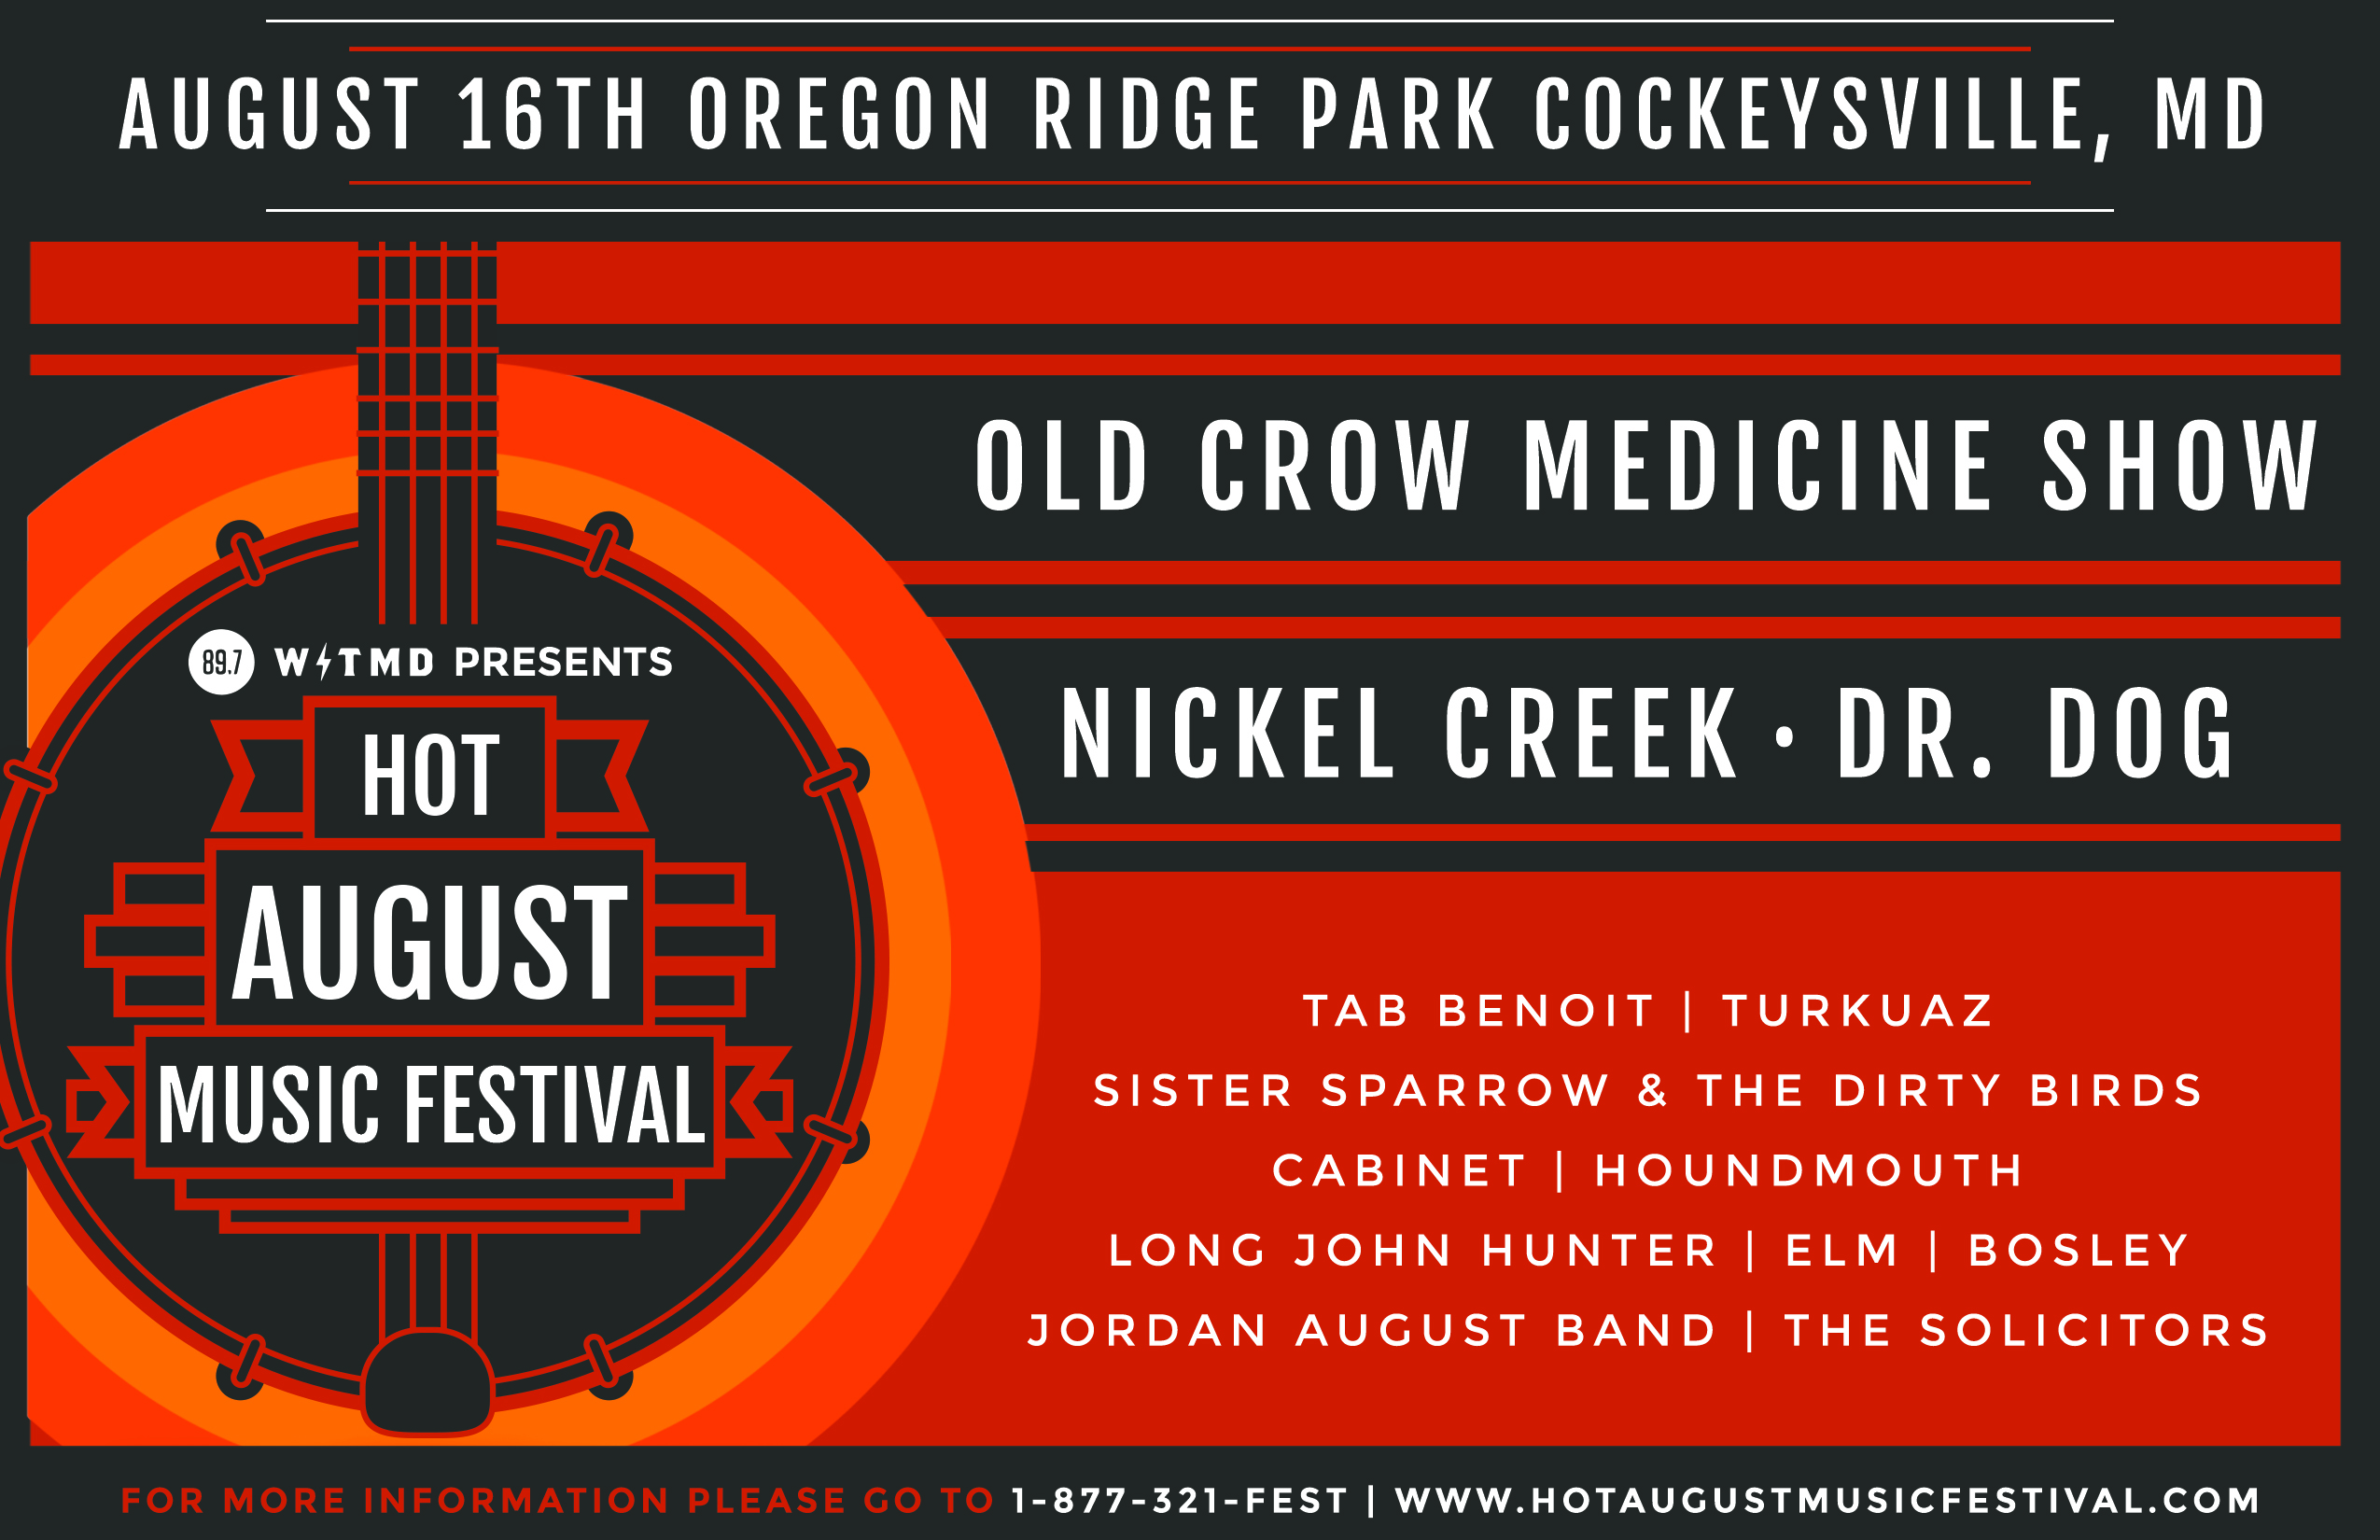 Hot August Music Festival Preview: Aug 16 Cockeysville, MD